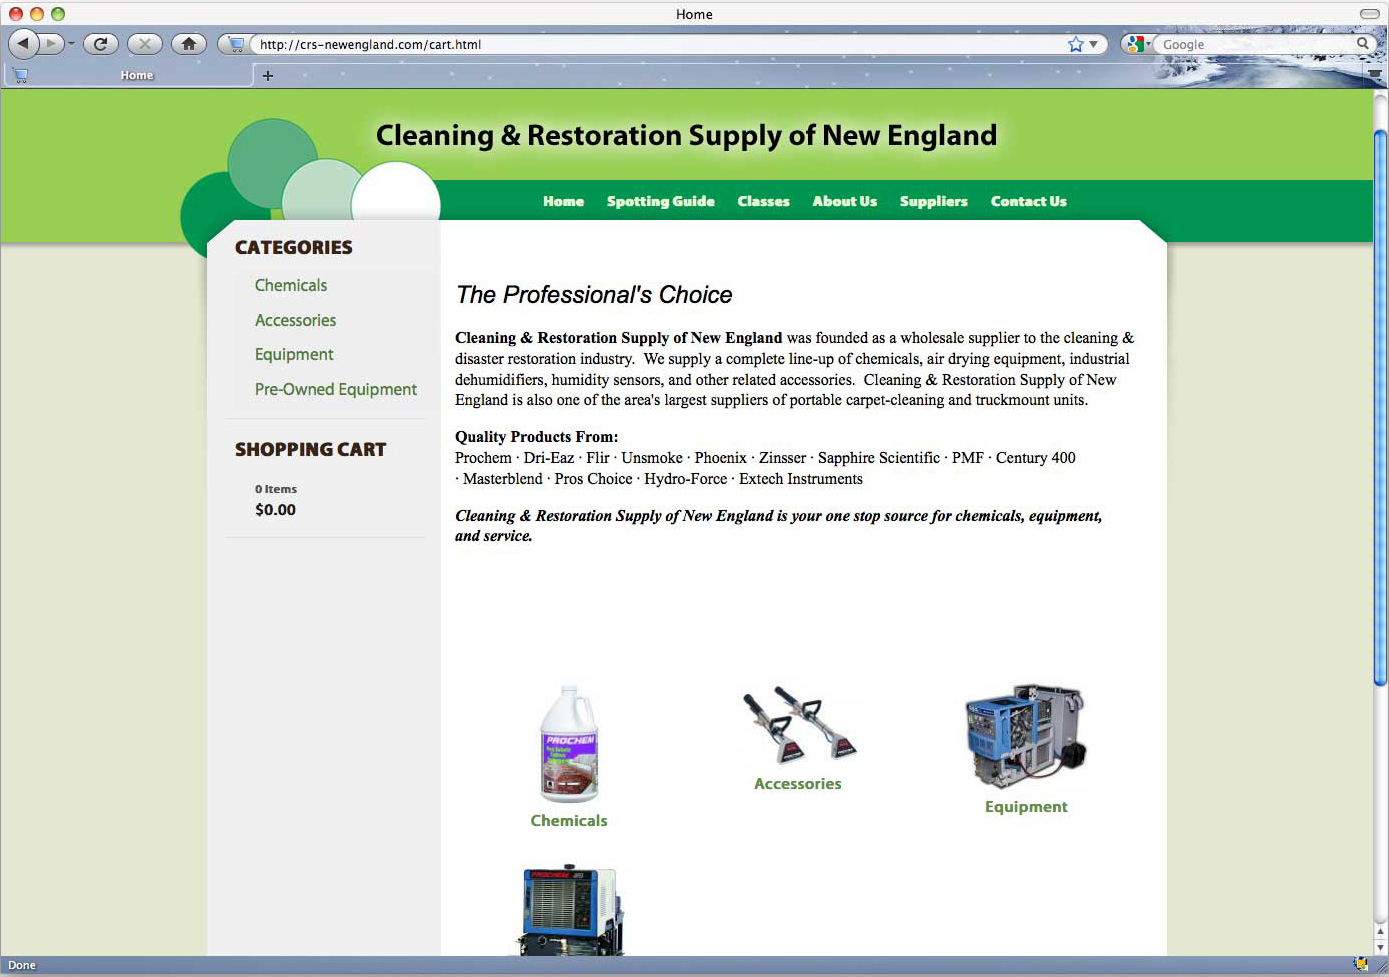 Cleaning and Restoration Supply of New England new website